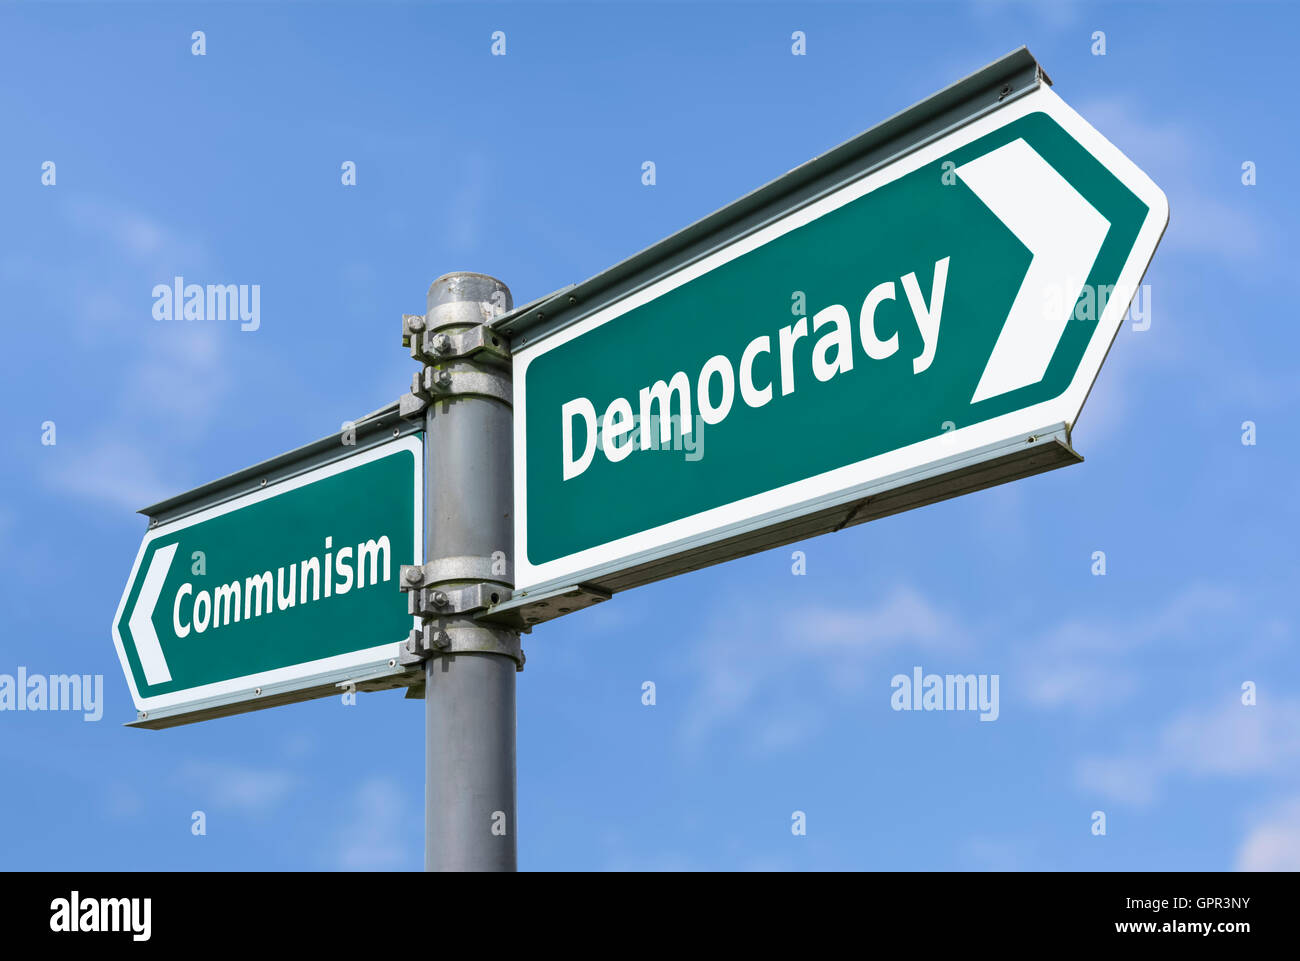 Dictatorship or Democracy sign to show concept of government types. - Stock Image